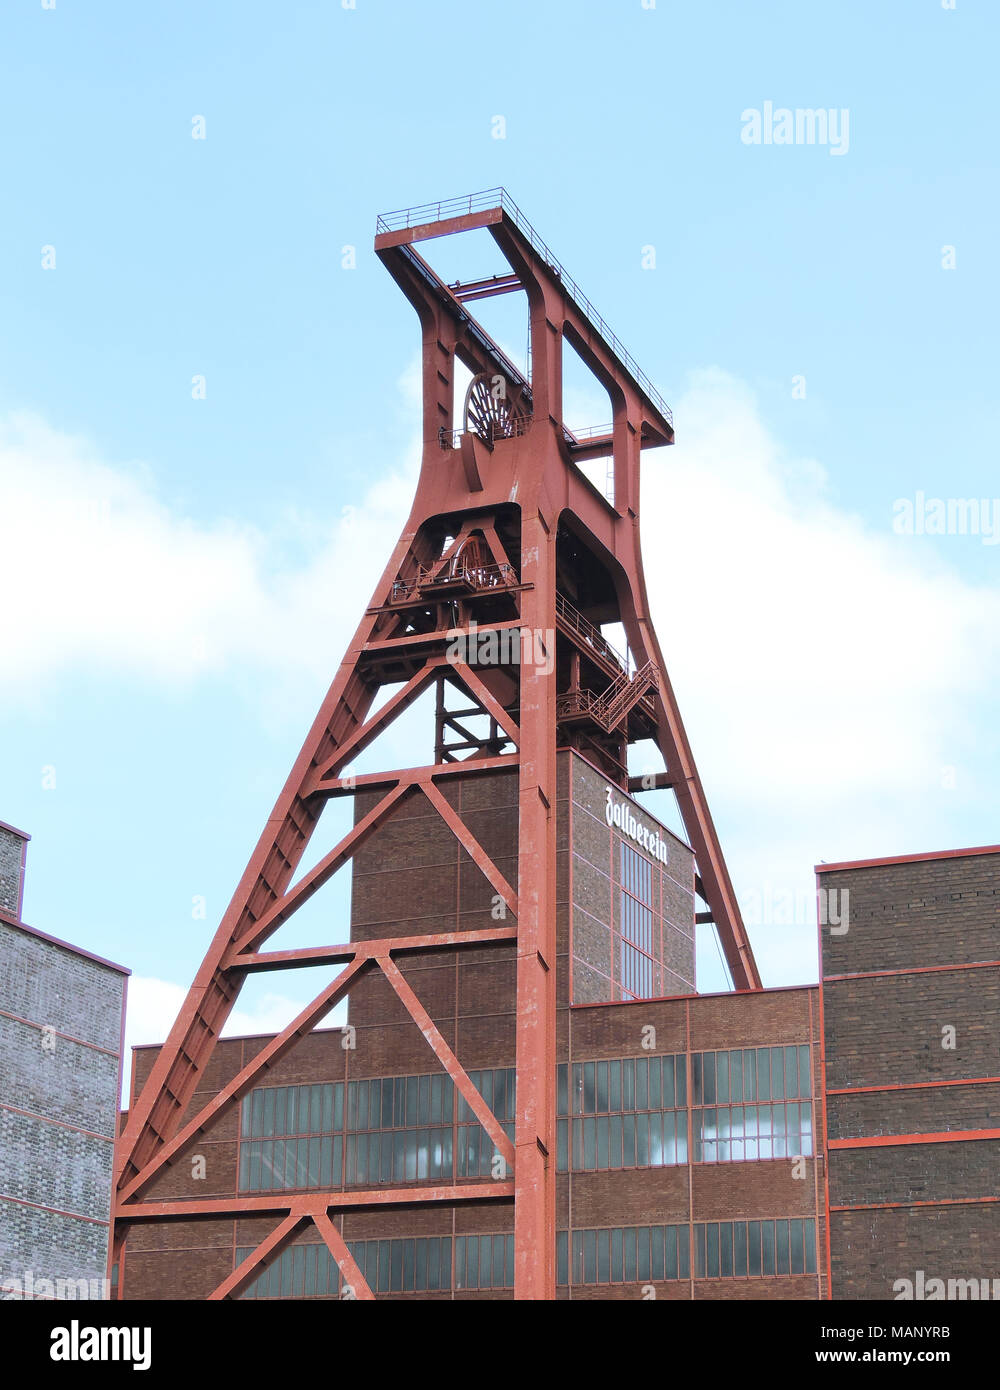 Zeche Zollverein, unesco heritage in Essen, Ruhrgebiet. Famous place, old coal mine shaft and blue sky. - Stock Image